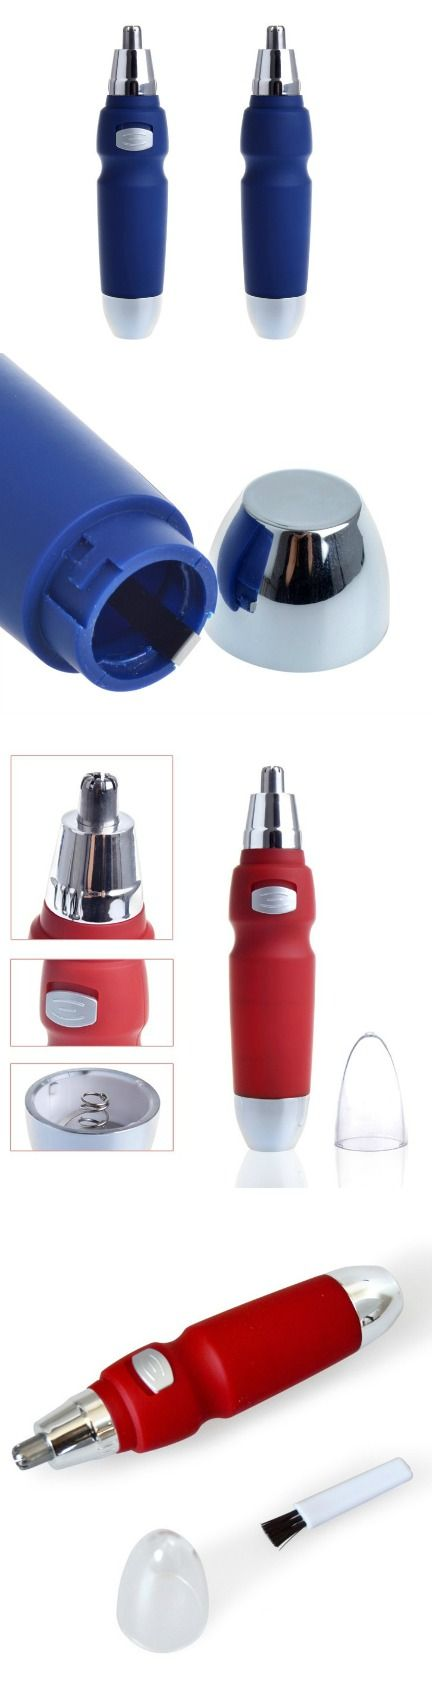 Electric Ear Nose Hair Trimmer Removal! Click The Image To Buy It Now or Tag Someone You Want To Buy This For. #Beauty